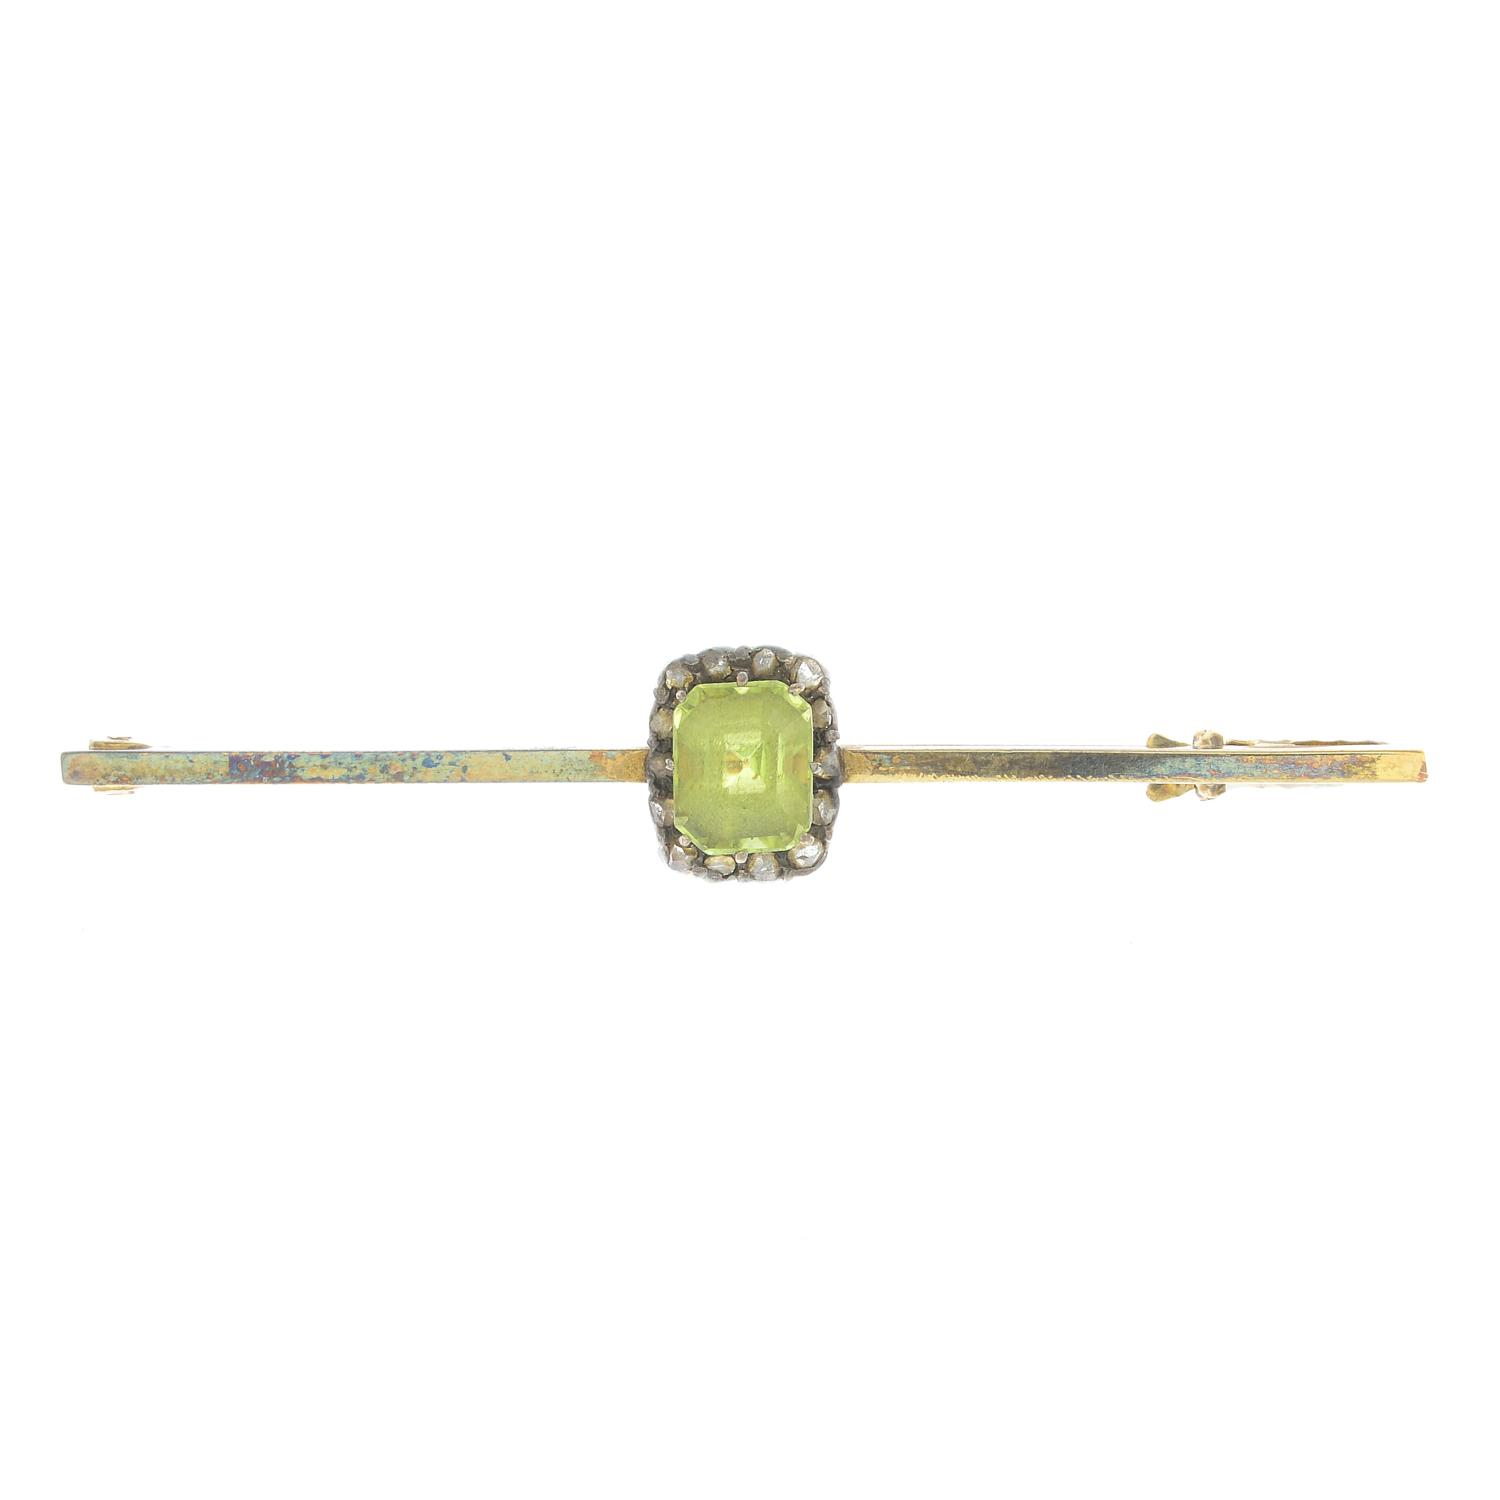 Lot 30 - An early 20th century silver and gold peridot and diamond bar brooch.Length 5.1cms.